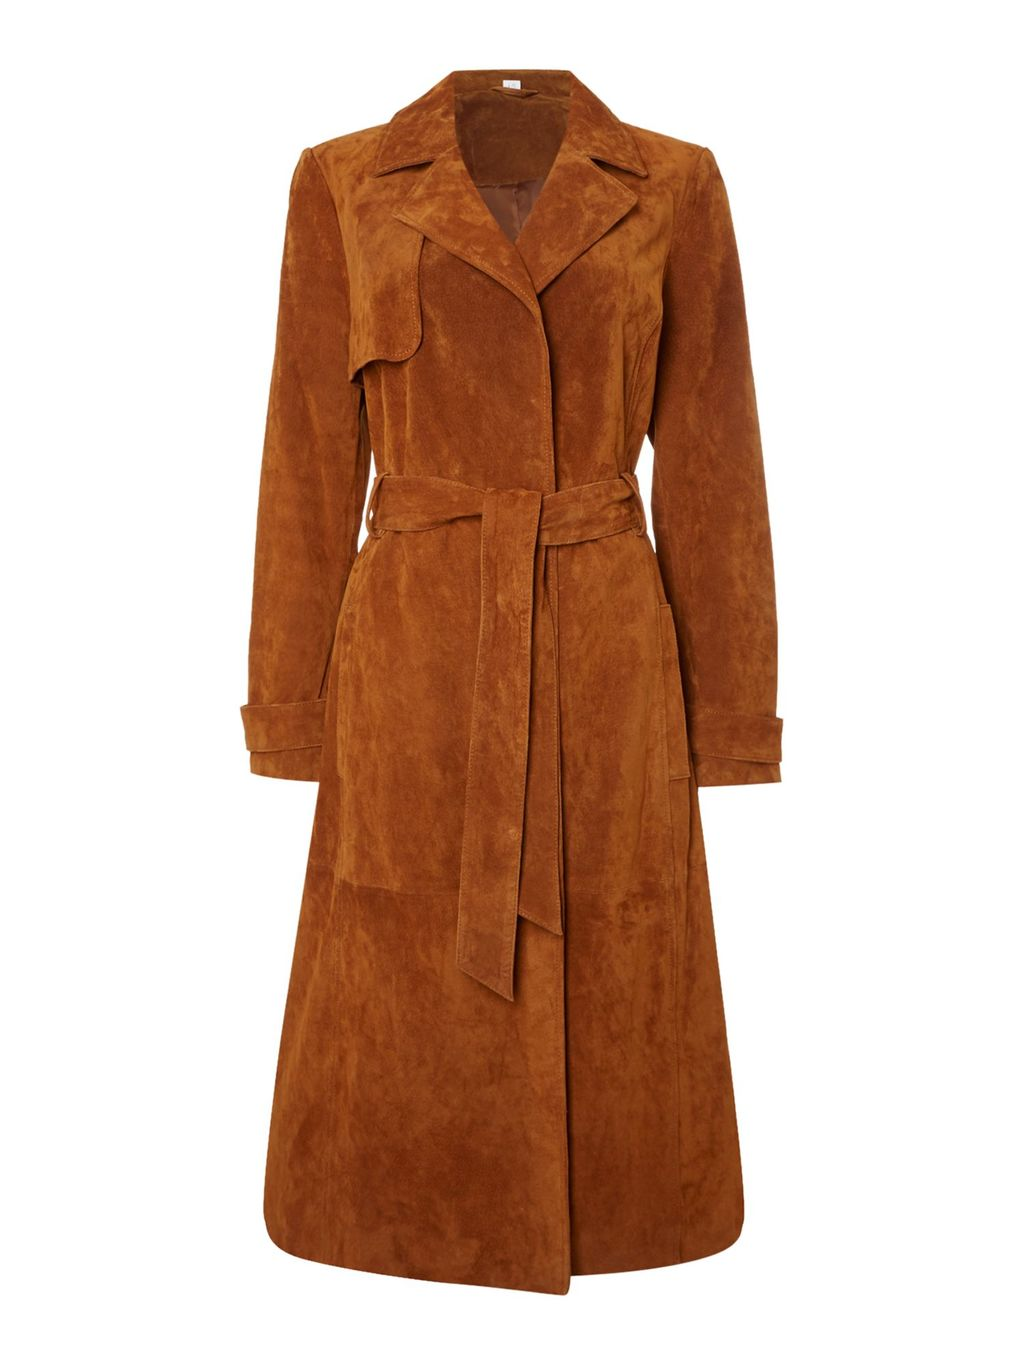 Sian Suede Trench Coat, Tan - pattern: plain; style: trench coat; length: on the knee; collar: standard lapel/rever collar; predominant colour: tan; occasions: casual, creative work; fit: tailored/fitted; fibres: leather - 100%; waist detail: belted waist/tie at waist/drawstring; sleeve length: long sleeve; sleeve style: standard; collar break: medium; pattern type: fabric; texture group: suede; season: s/s 2016; wardrobe: highlight